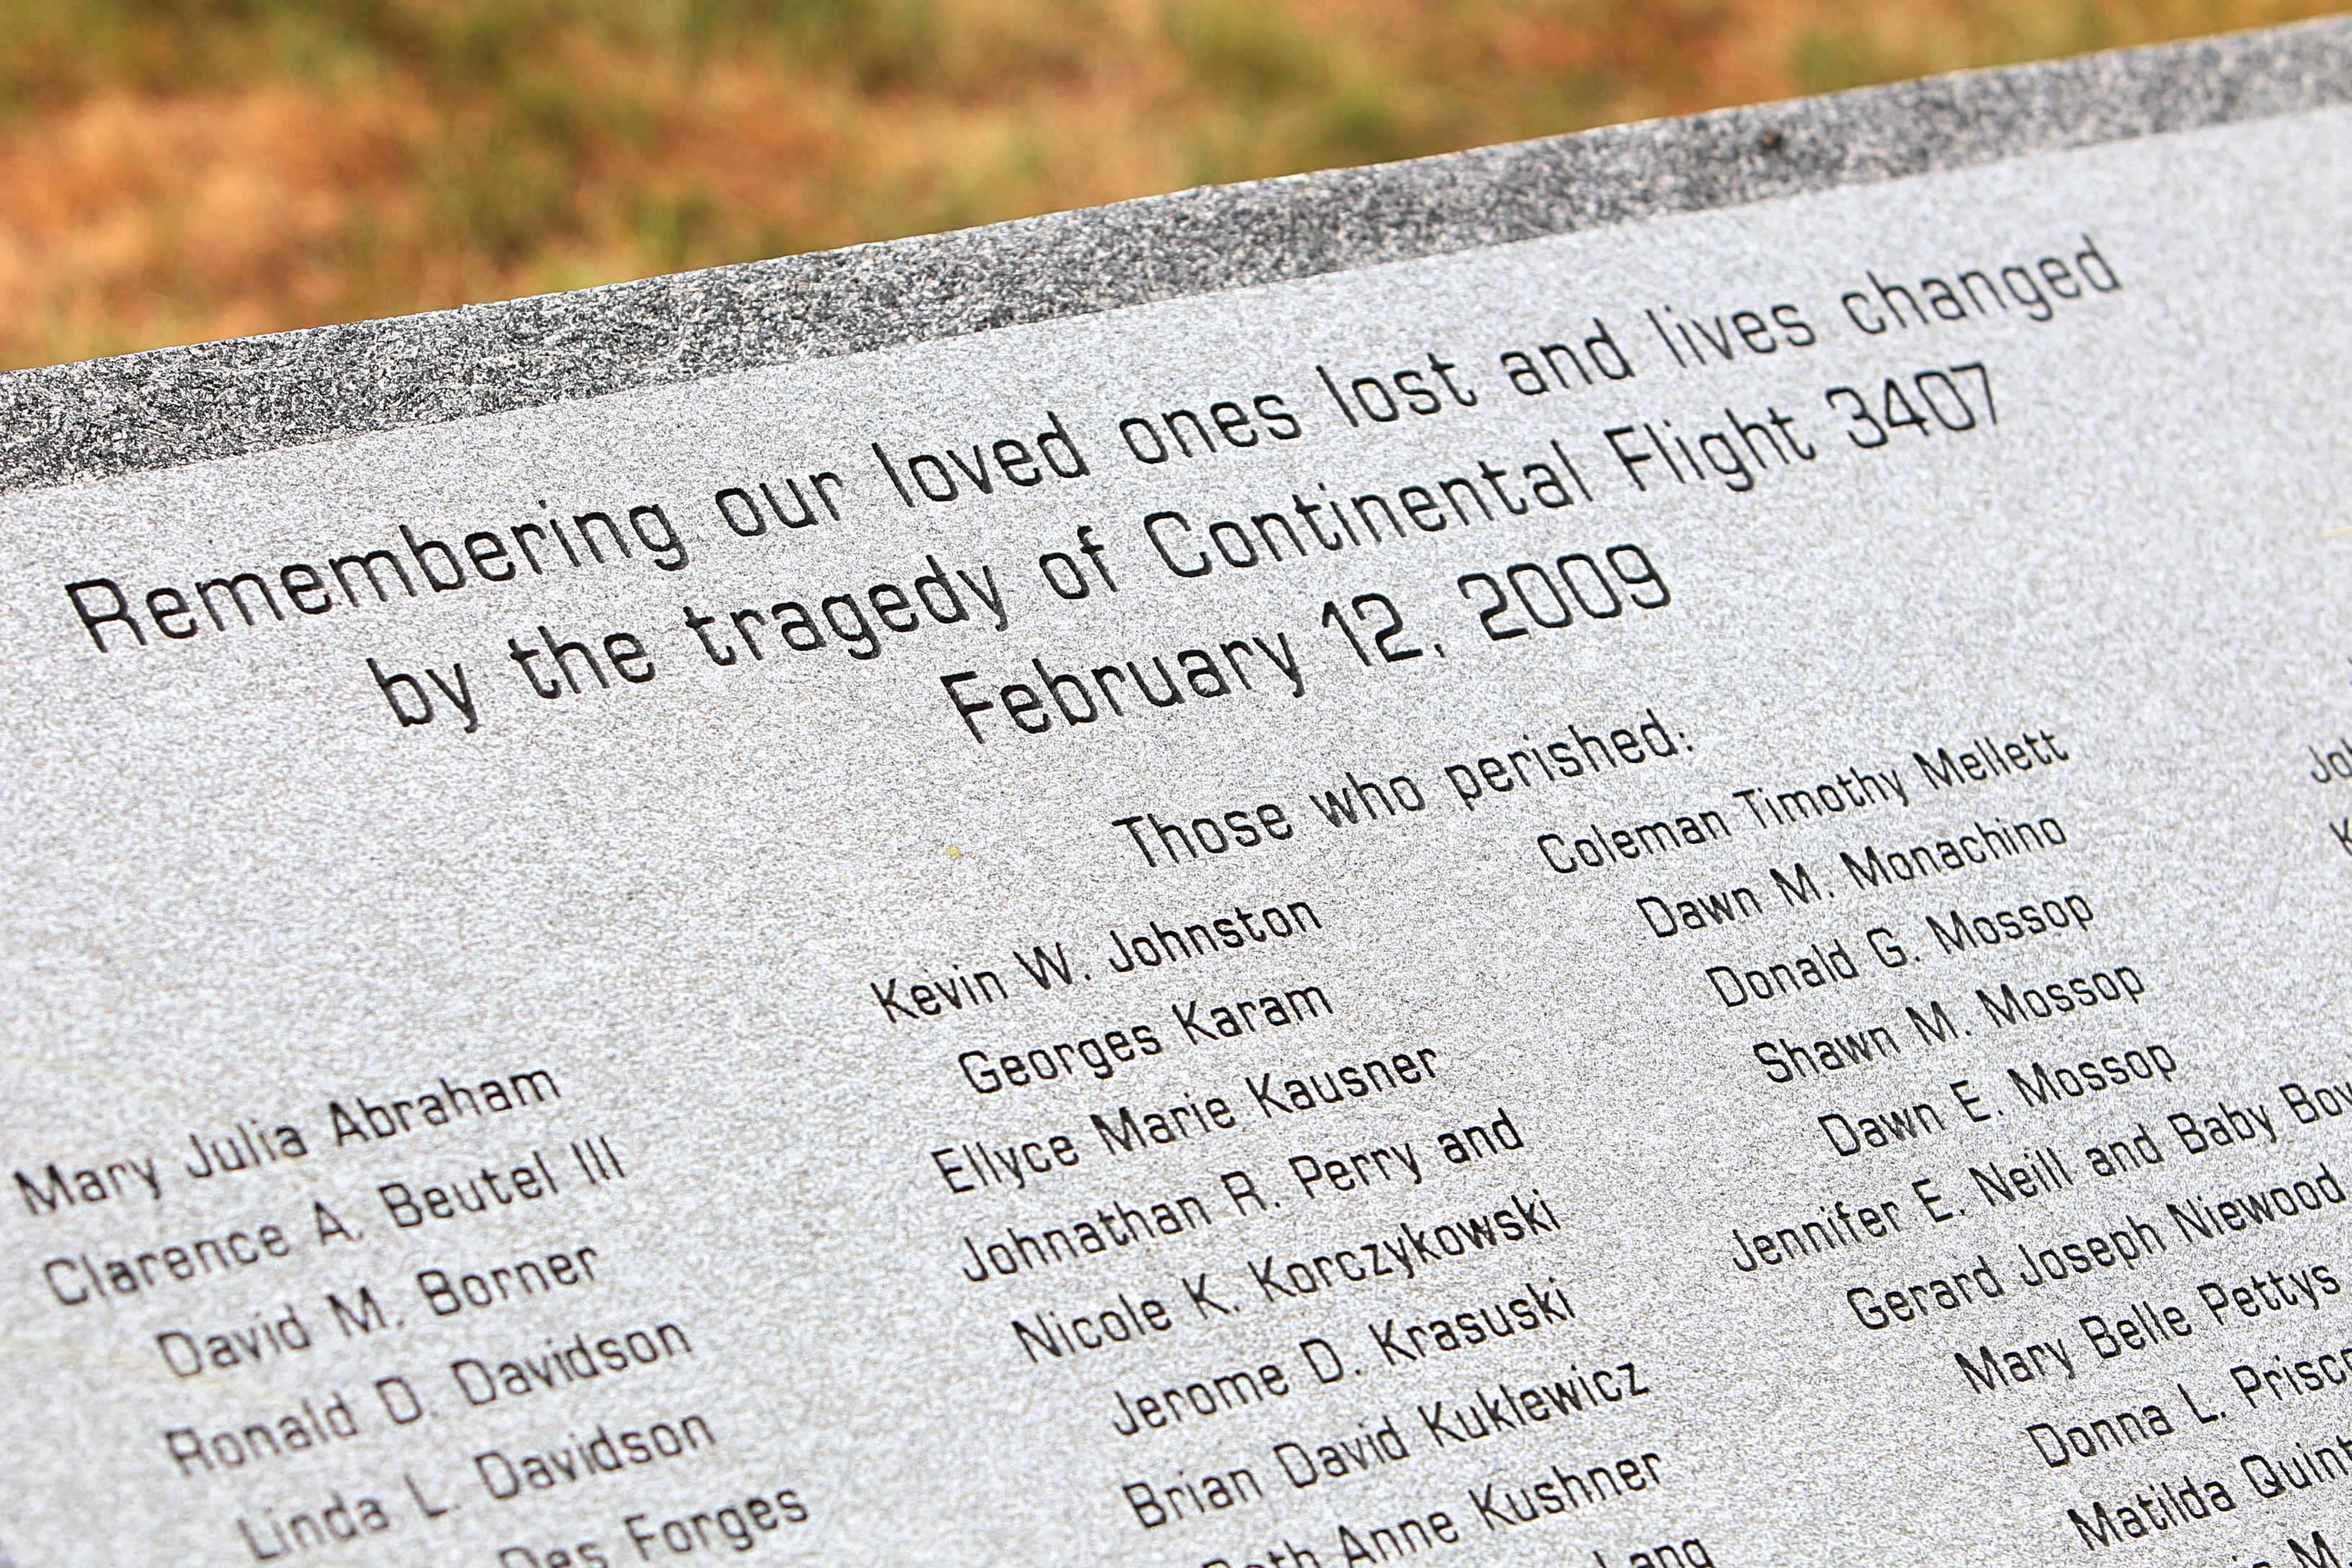 Deed to site of memorial to Flight 3407 victims in Clarence Center will be transferred from Wielinski family to town.